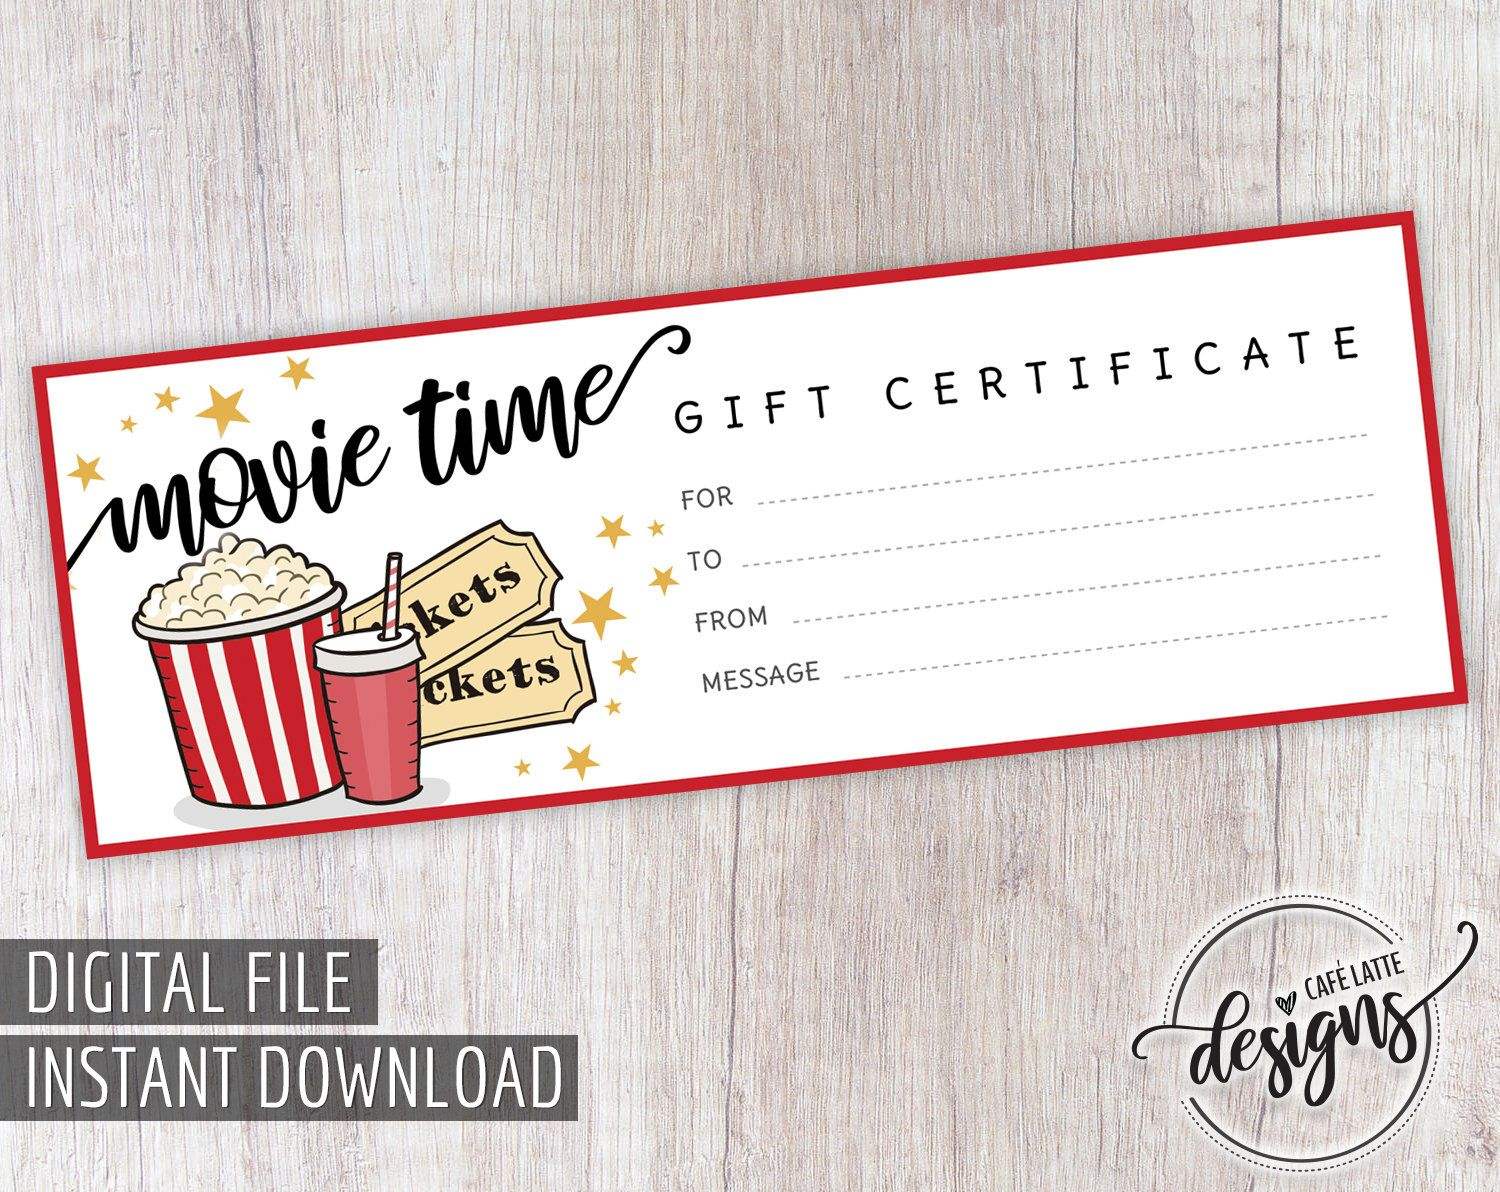 Movie Gift Certificate Birthday Gift Certificate Printable Movie Gift Coupon Gift Instant Download Last Minute Gift For Kids Teens Diy Movie Gift Birthday Gifts For Grandma Printable Gift Certificate